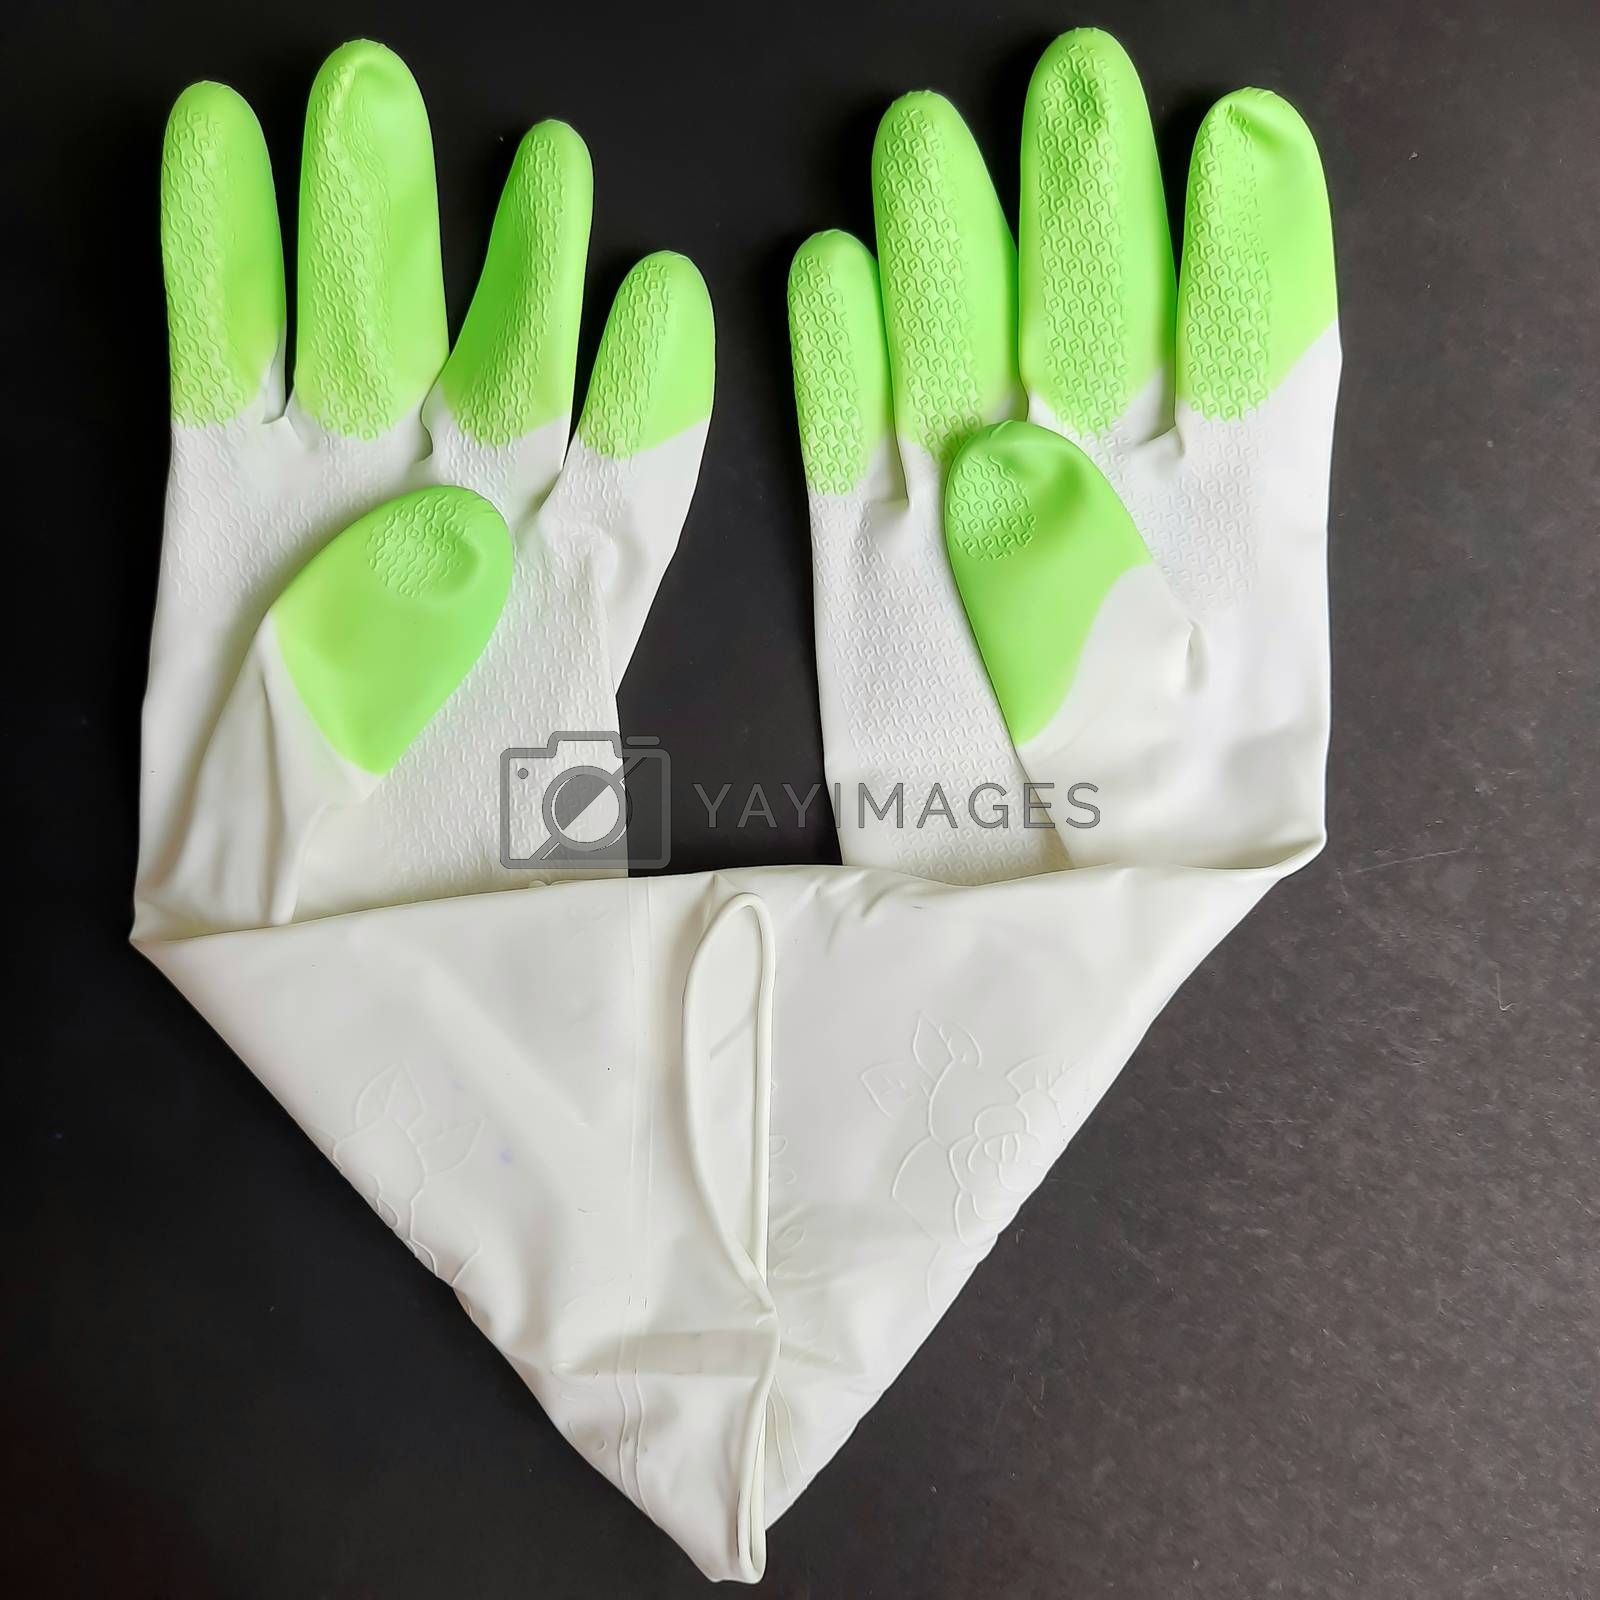 Chennai, India - July 13 2020: Hand gloves kept in black chart as backgrounds used to wash and be safe during covid-19